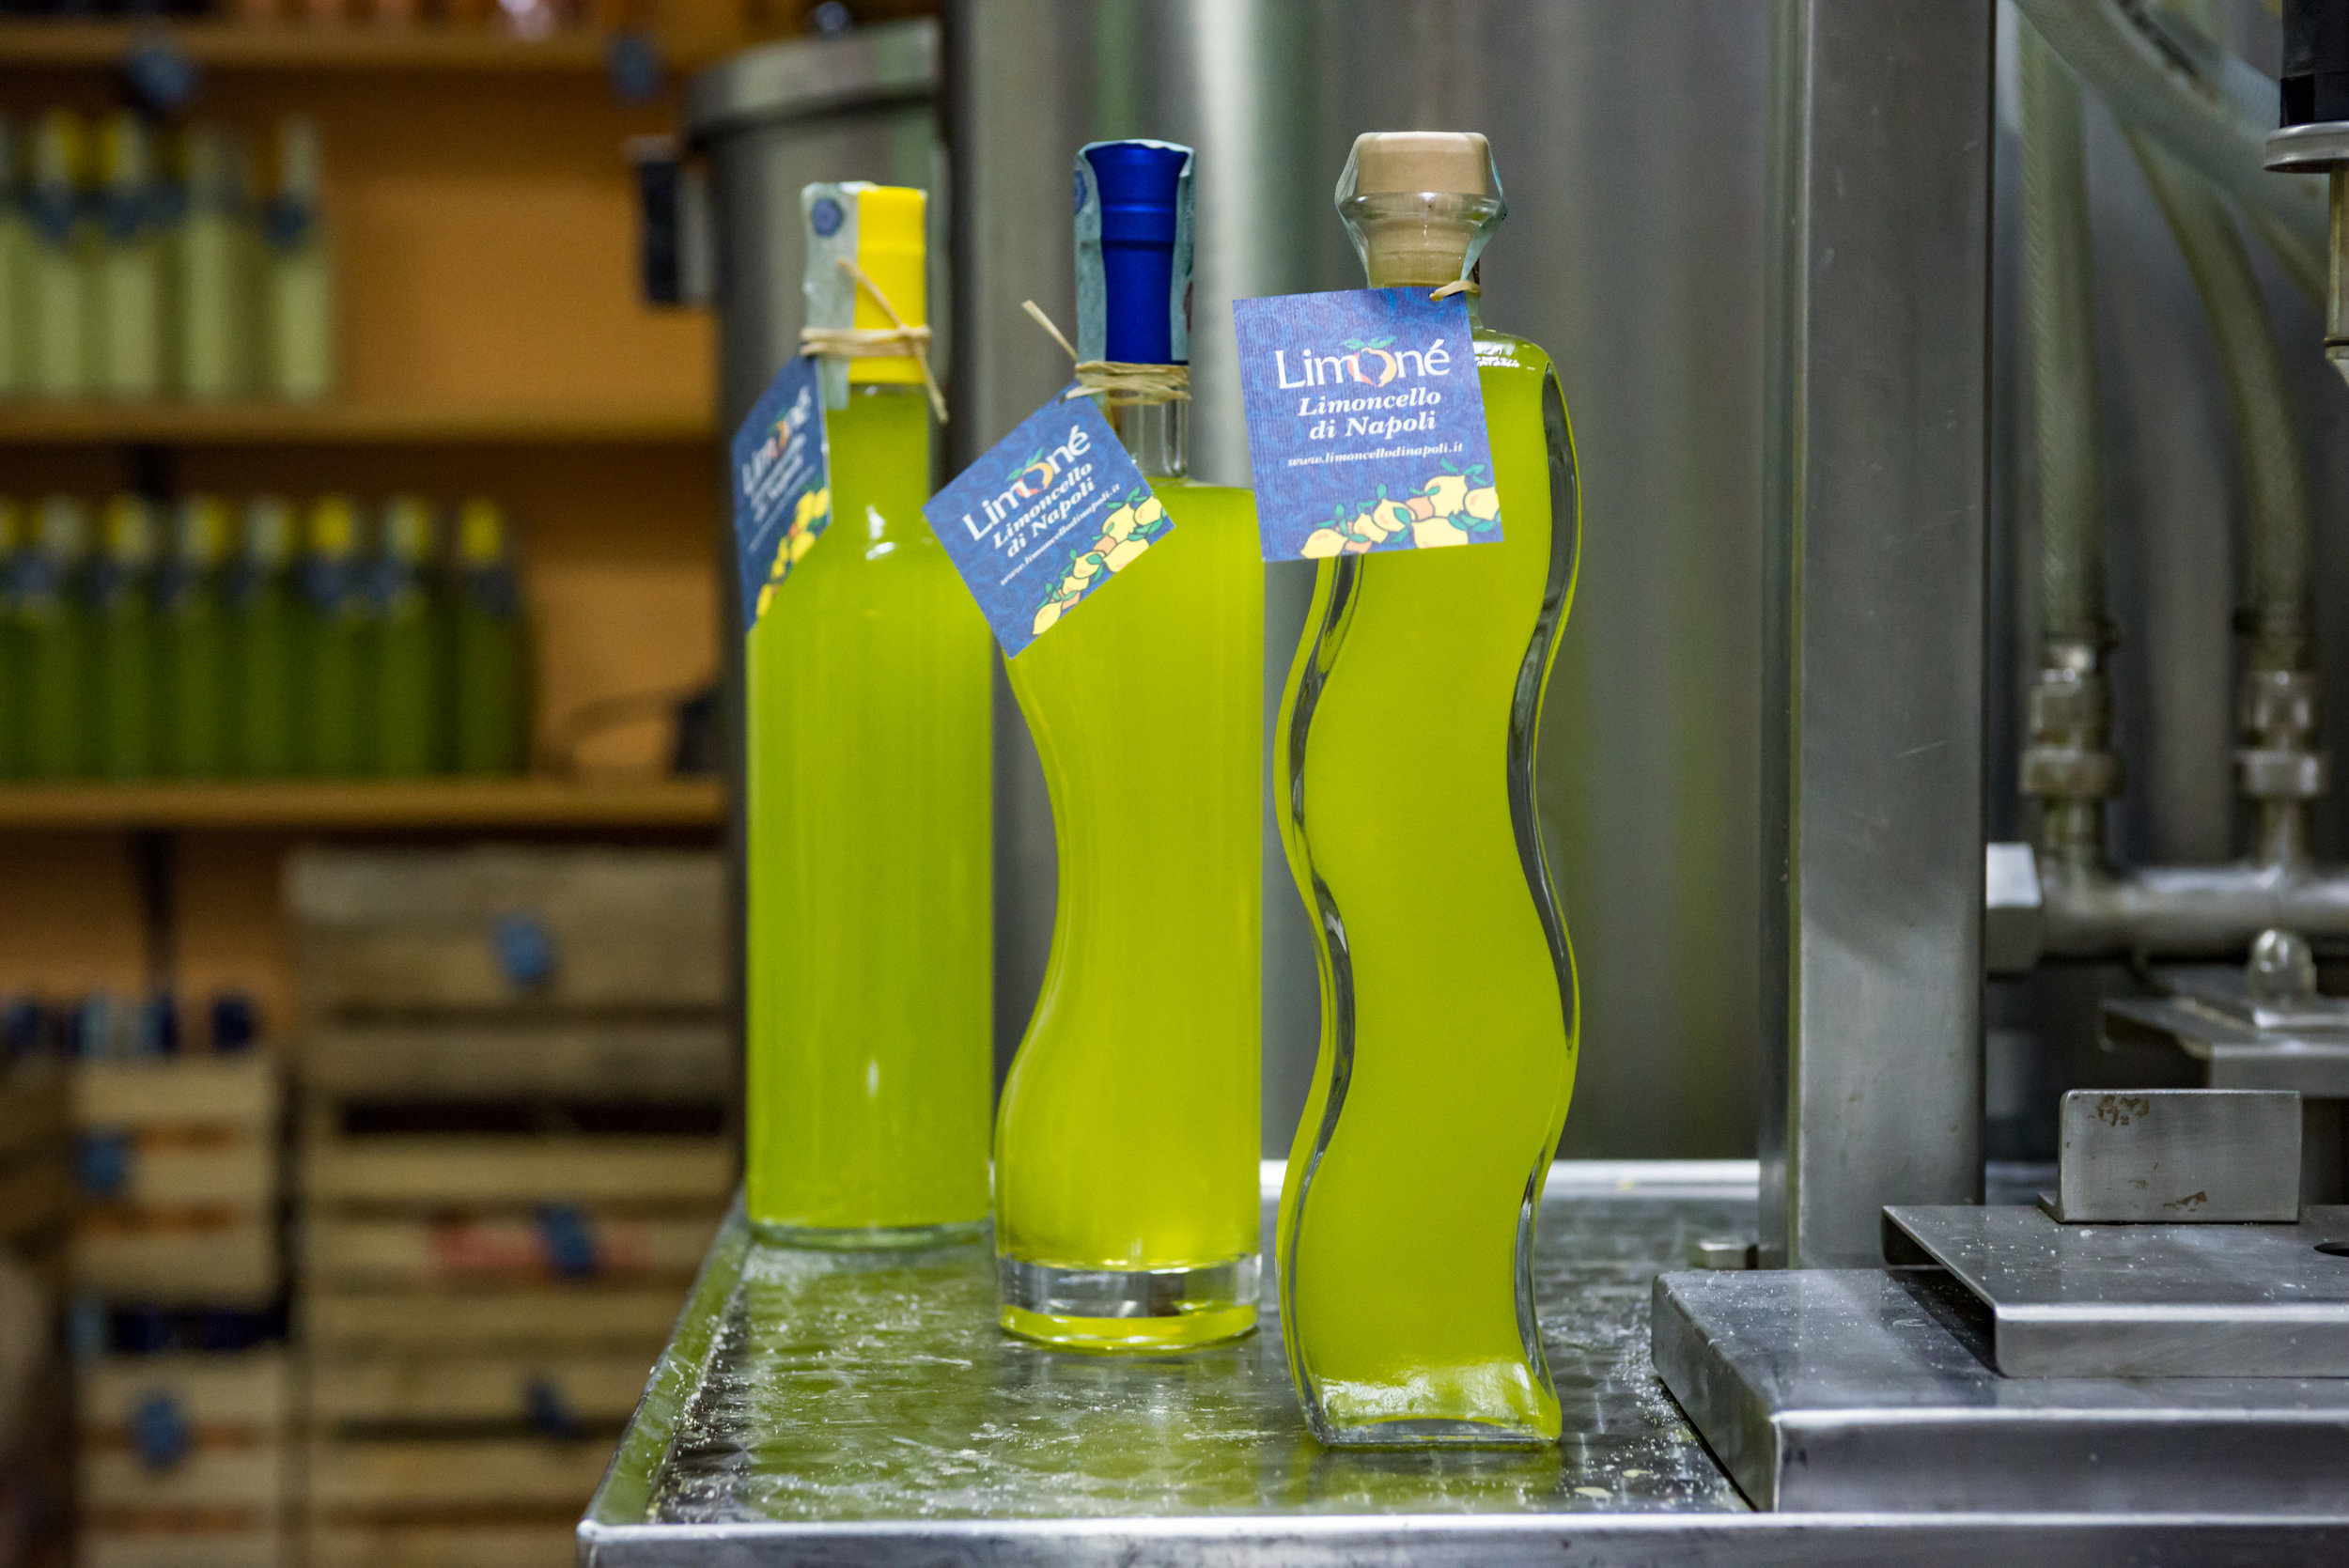 Freshly bottled Limone Limoncello